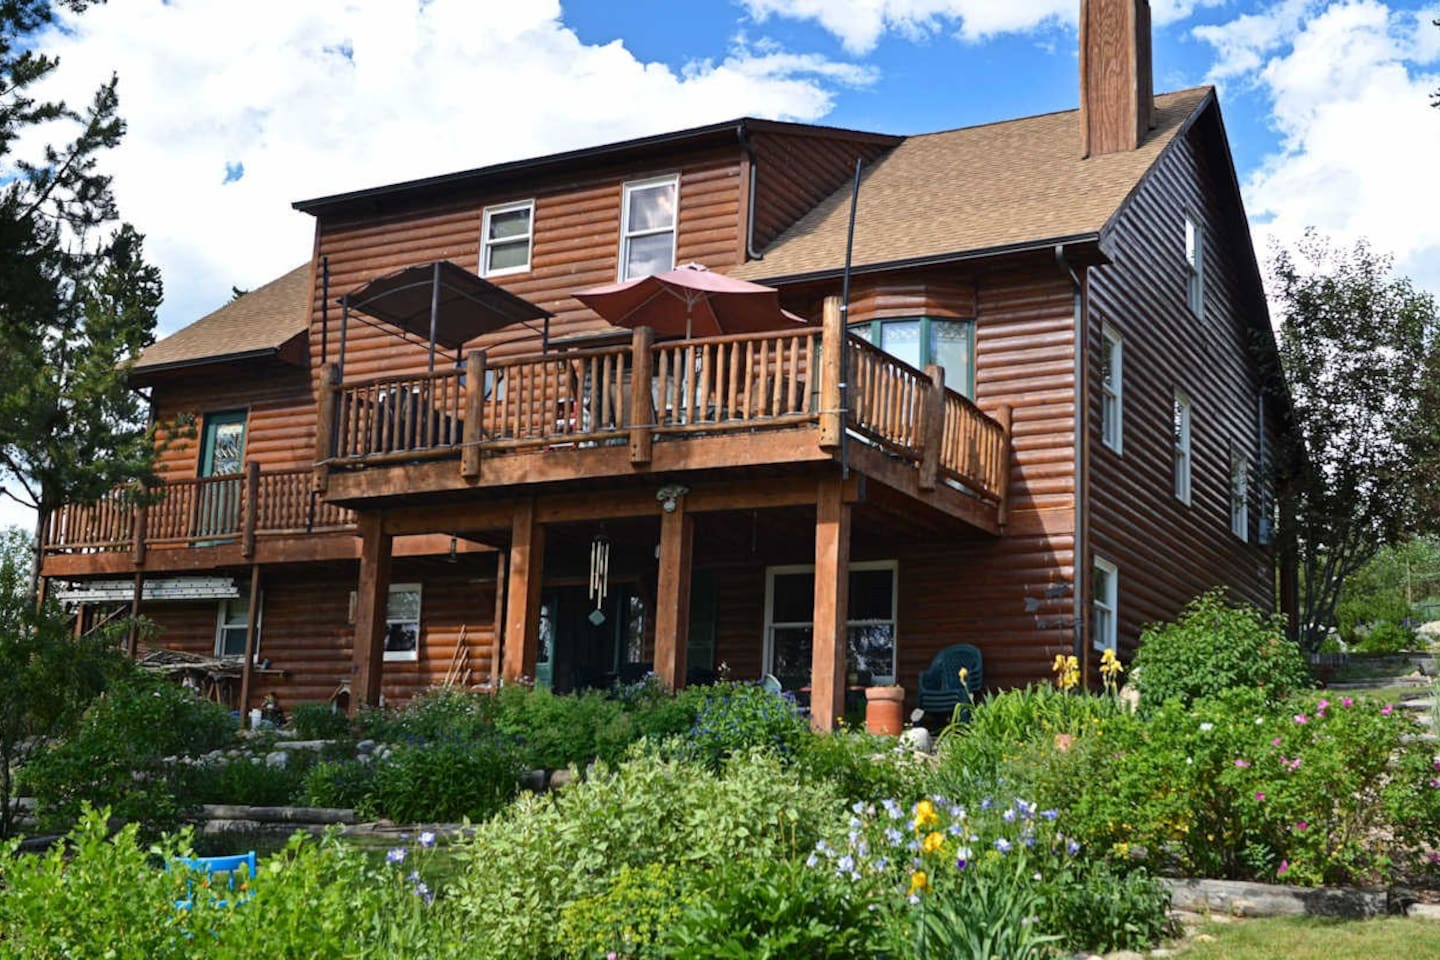 Welcome to Grand Lake! Your rental is professionally managed by TurnKey Vacation Rentals.